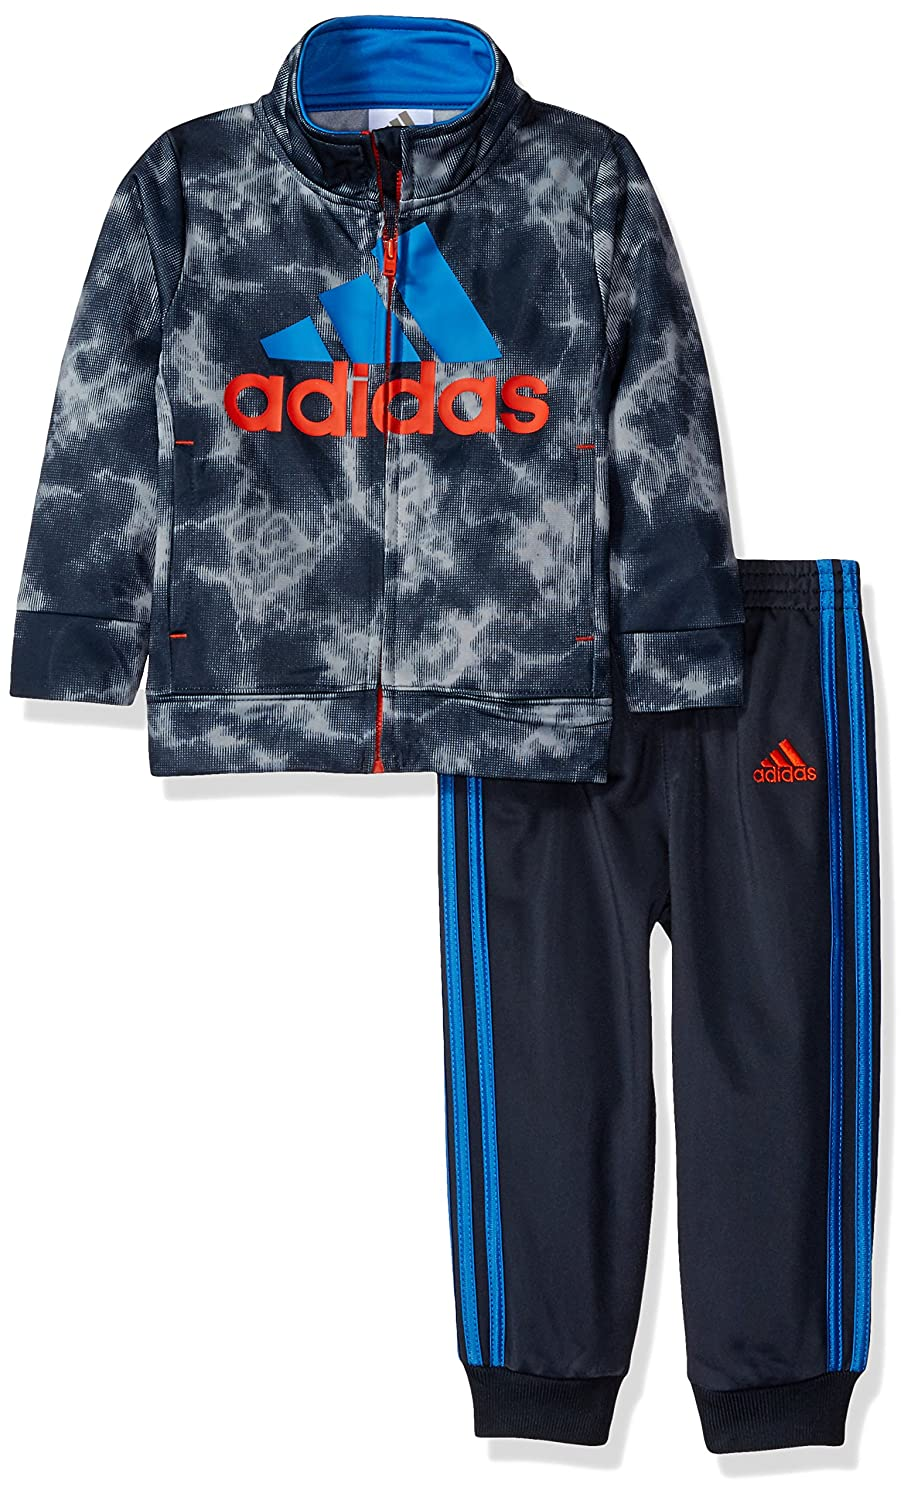 adidas Toddler Boys' Tricot Jacket and Pant Set, Dark Grey, 2T AG5902